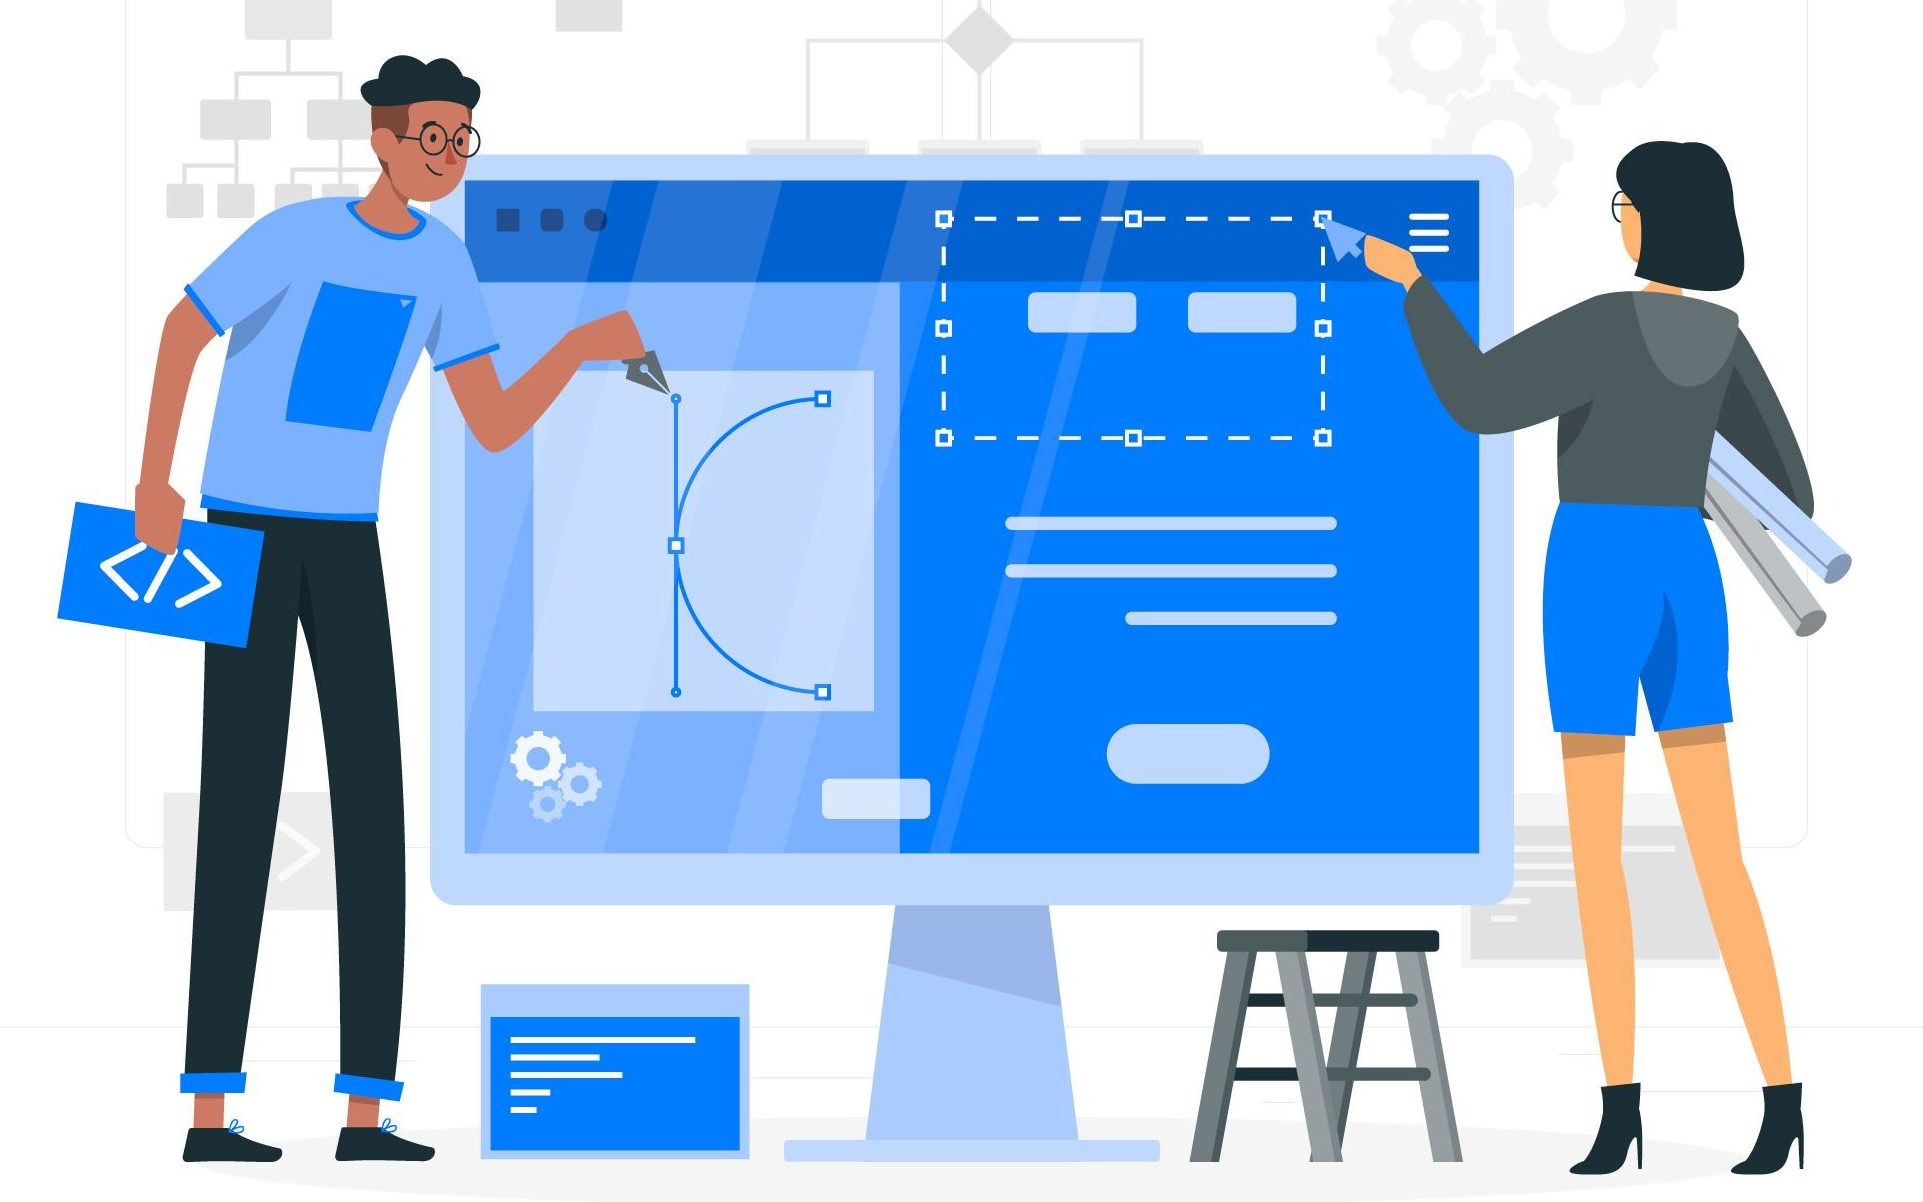 Illustration of two people editing a website on a giant computer.